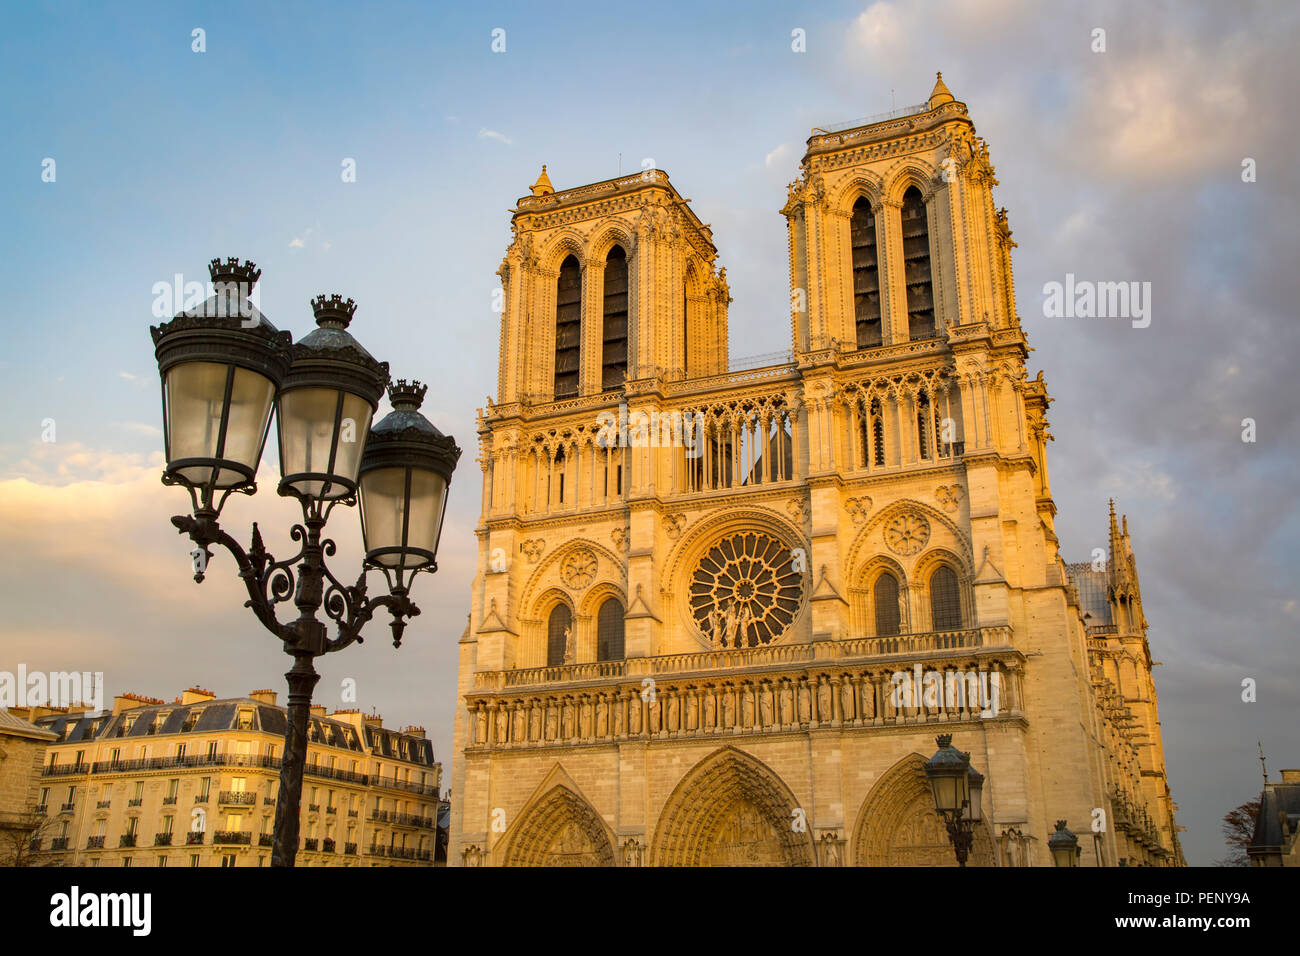 Setting sunlight on the front facade of Cathedral Notre Dame, Paris, France - Stock Image